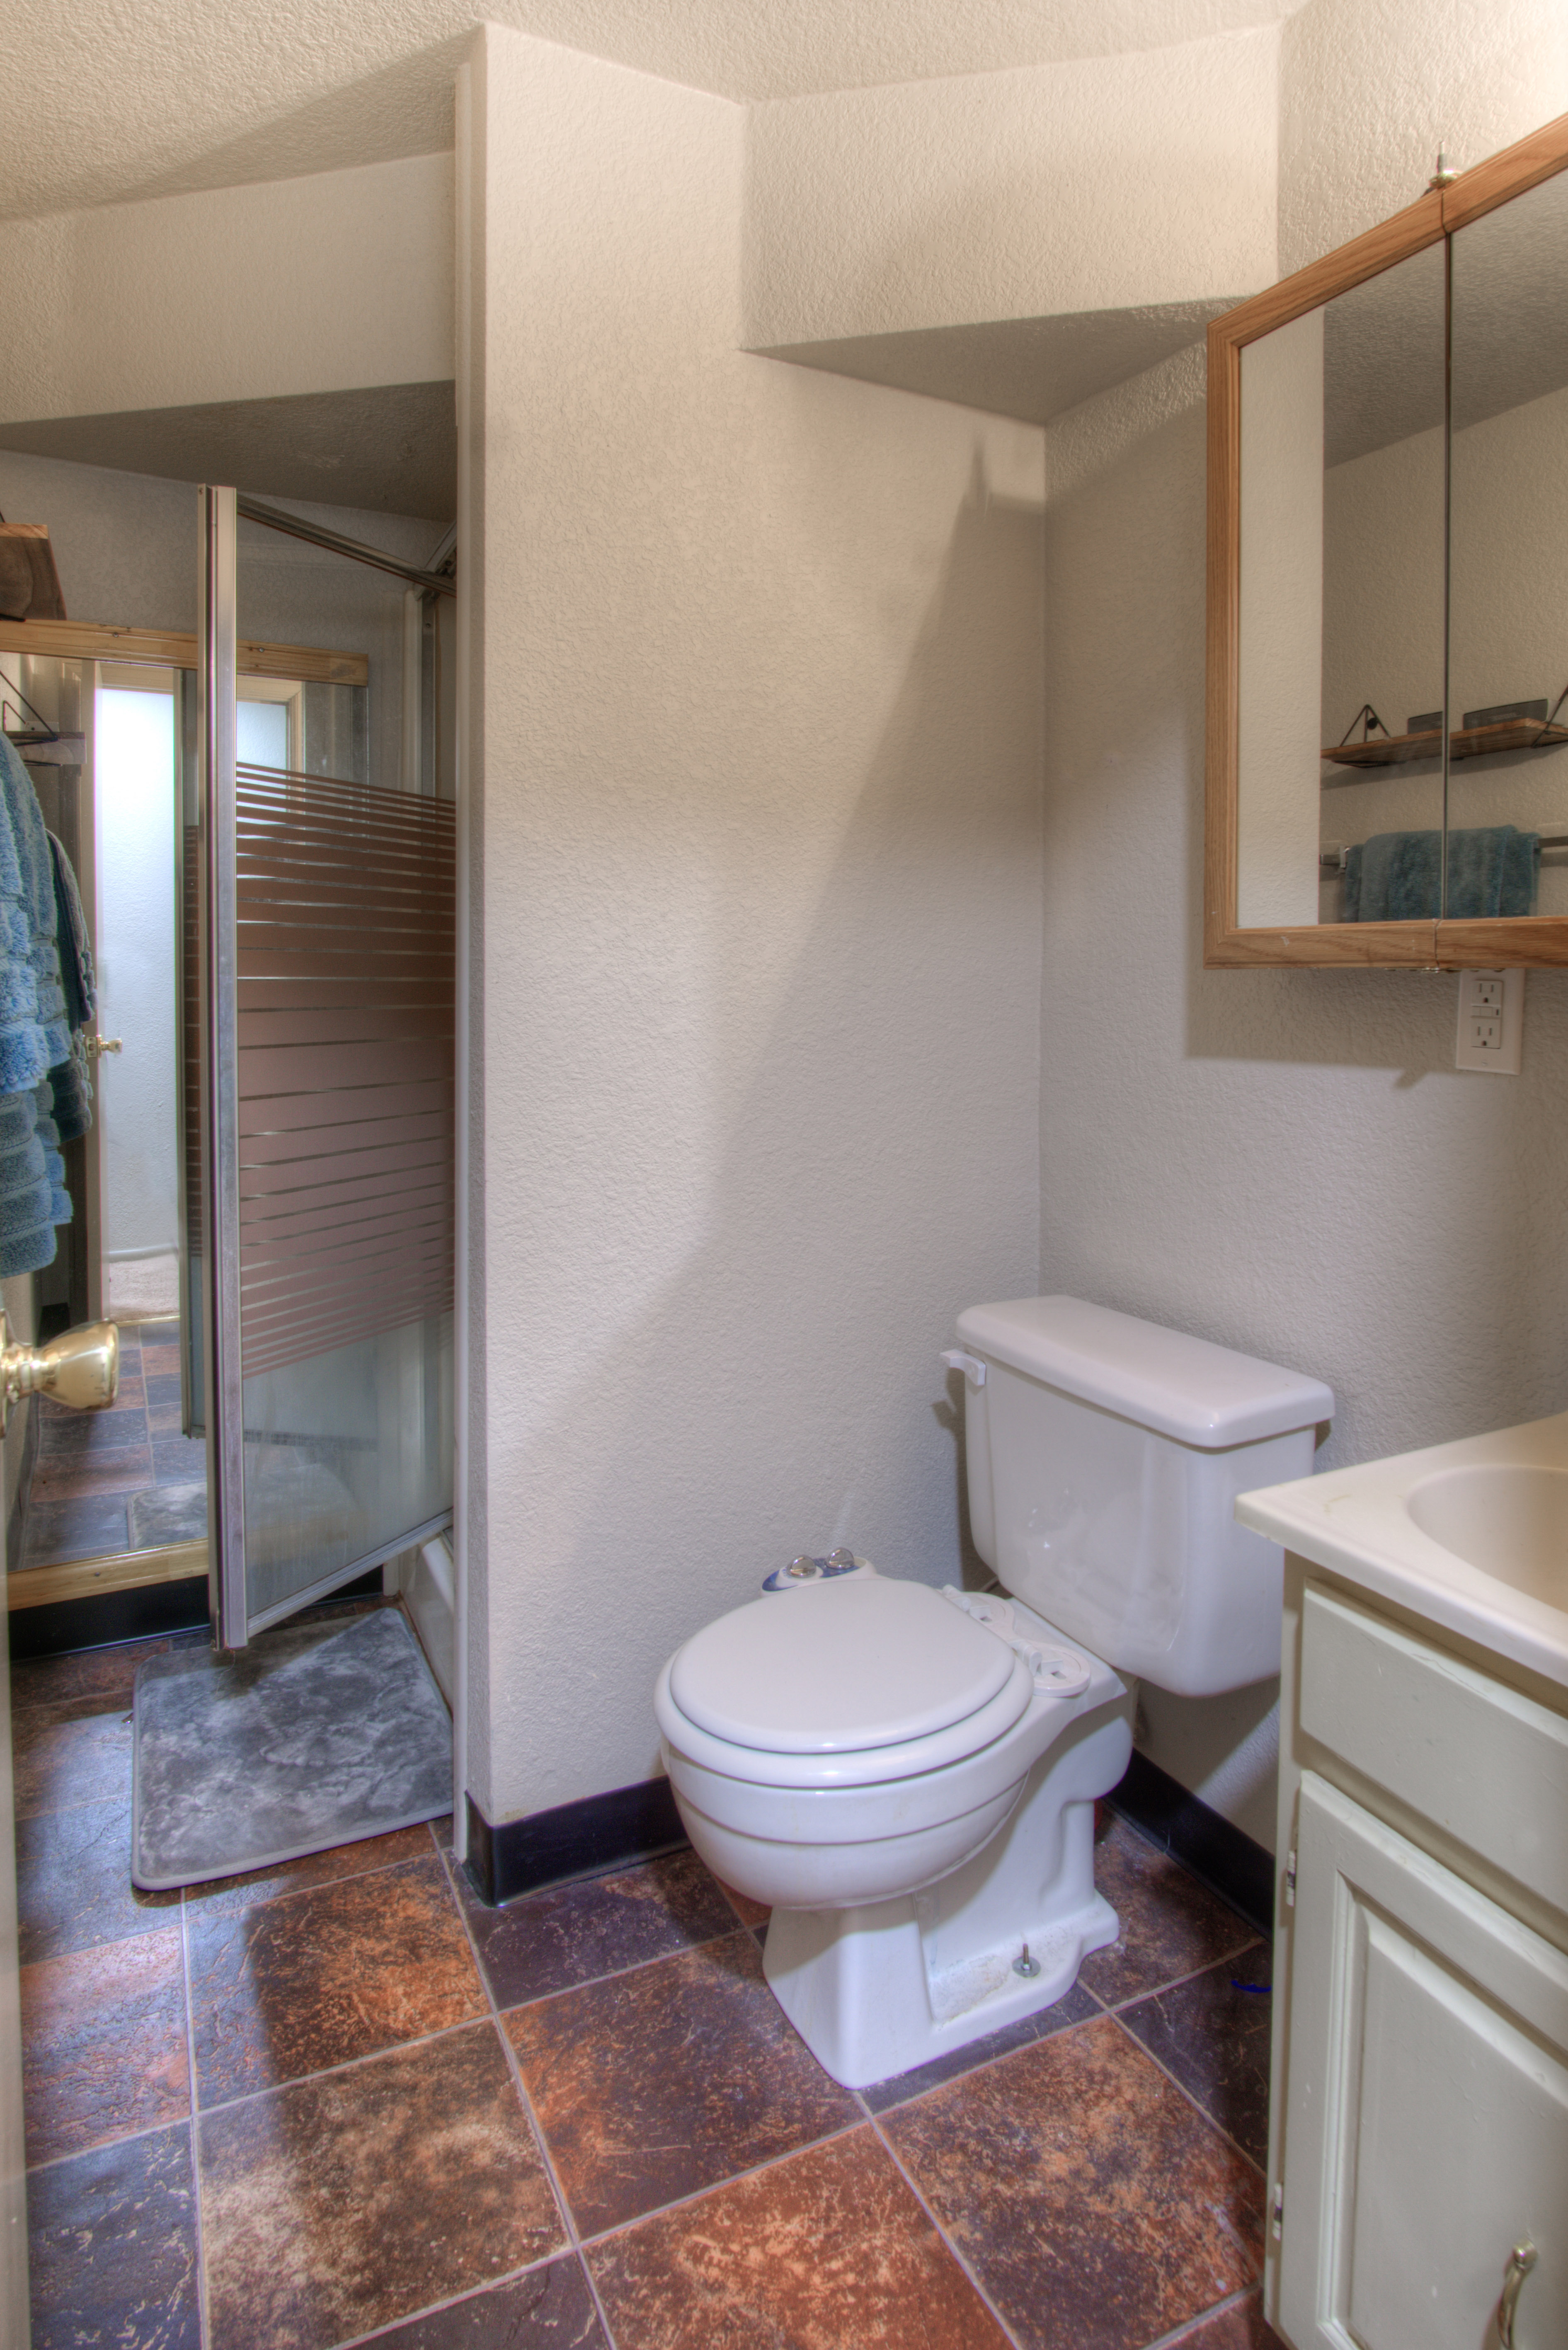 Another 3/4 bathroom with shower!